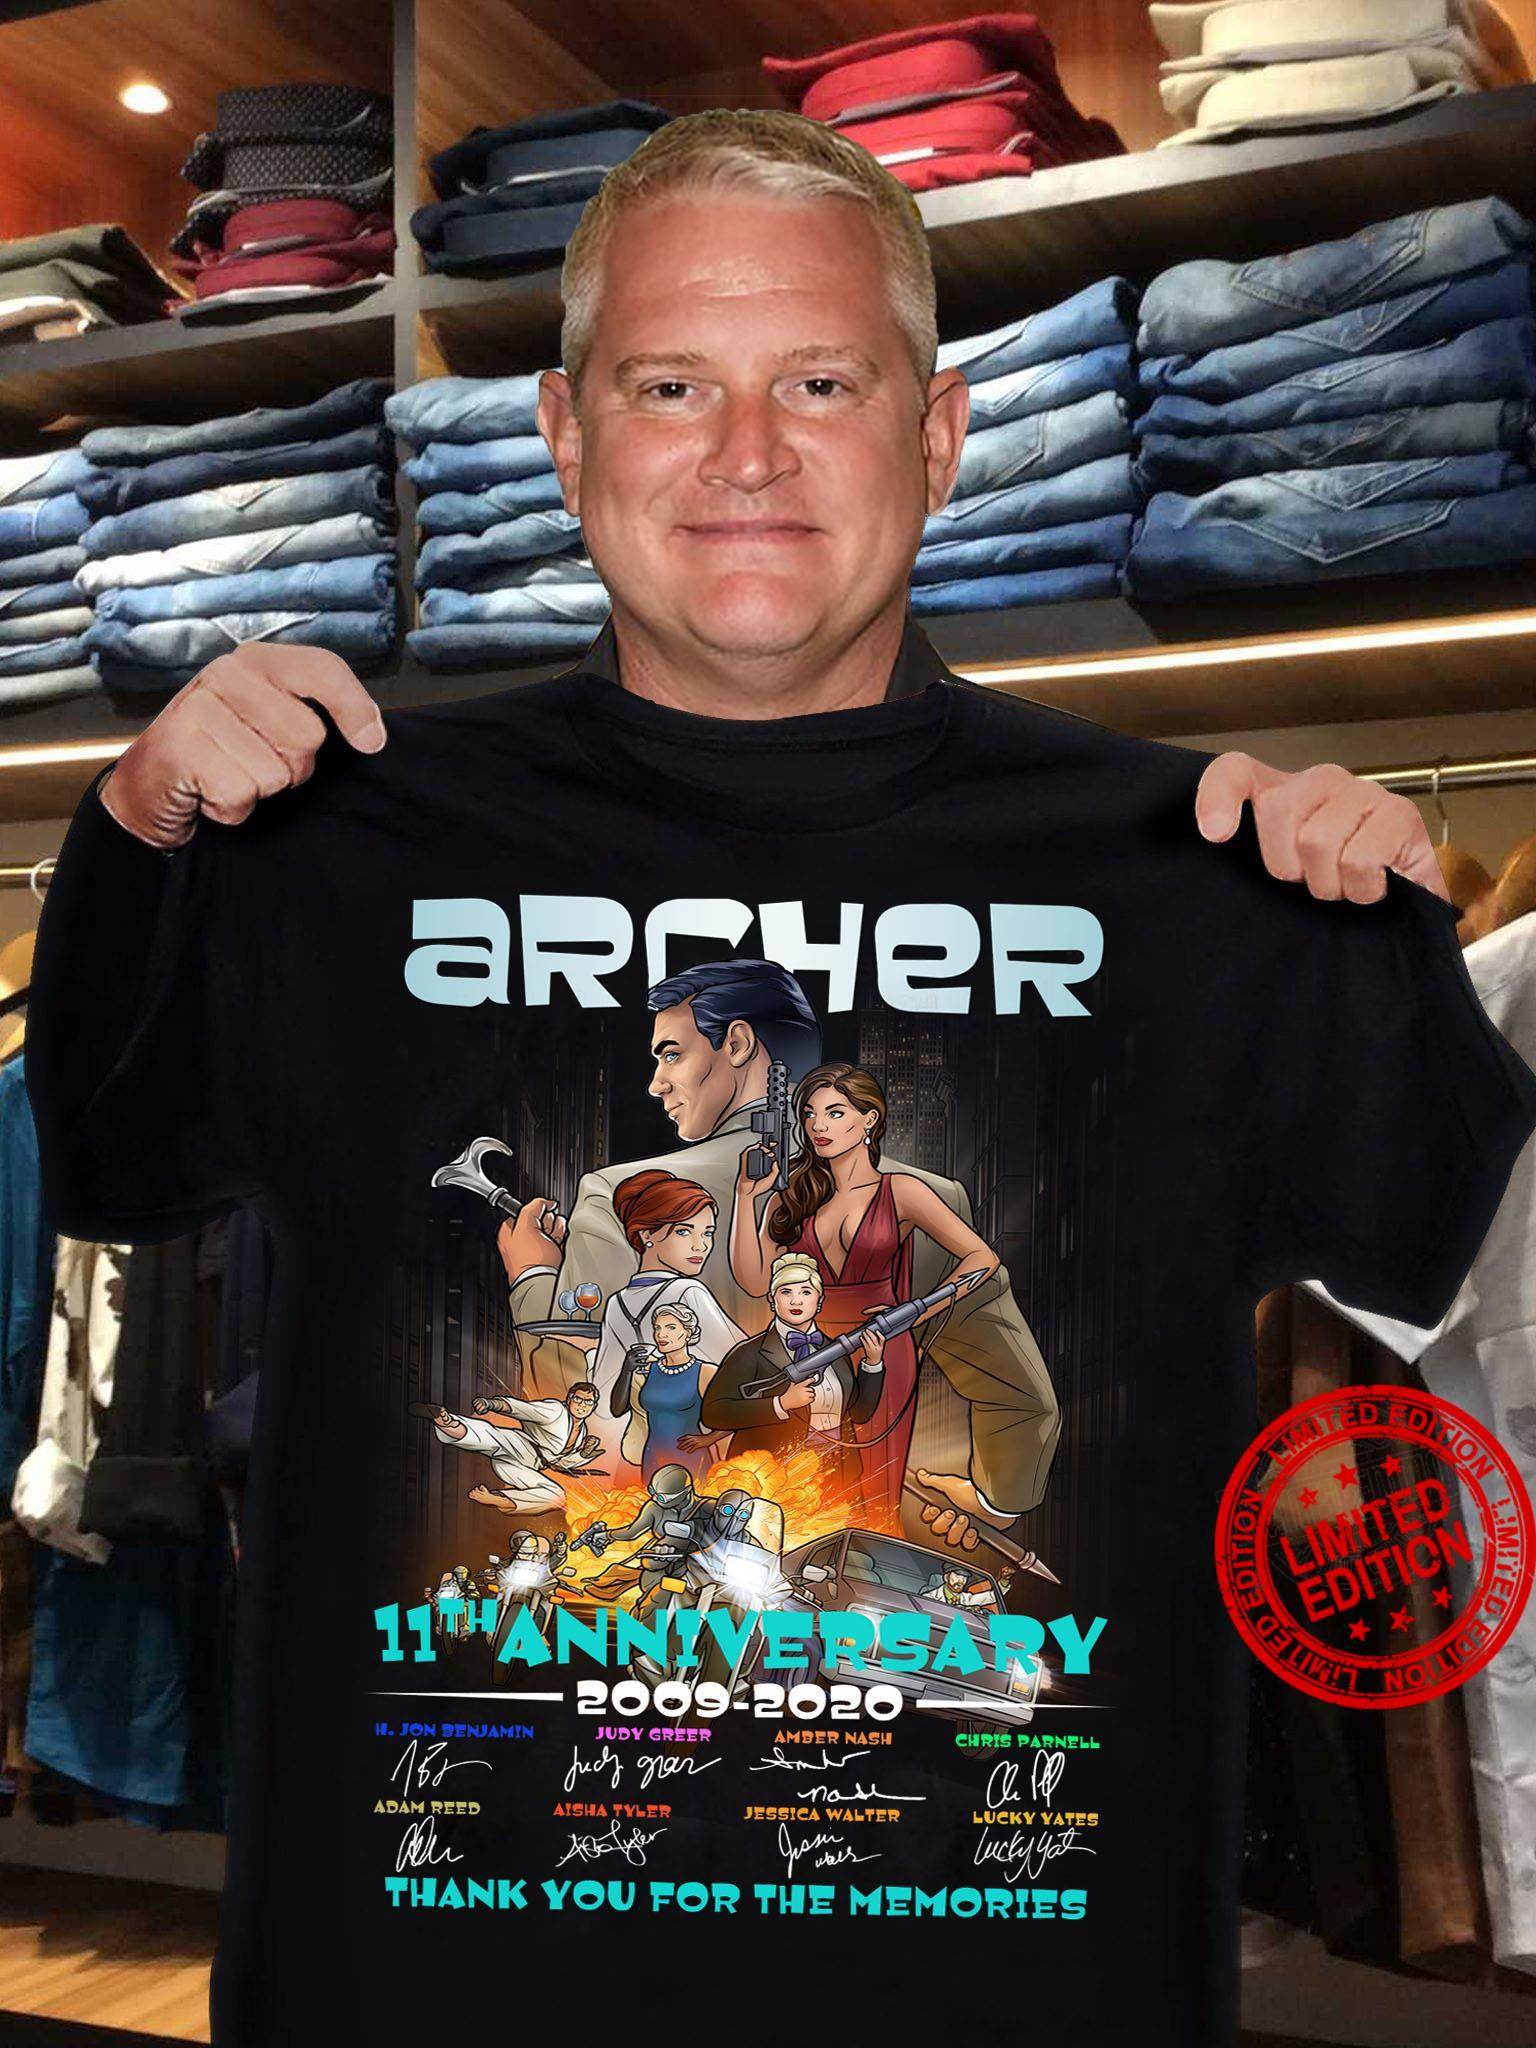 Archer 11th Anniversary 2009-2020 Thank You For The Memories Shirt